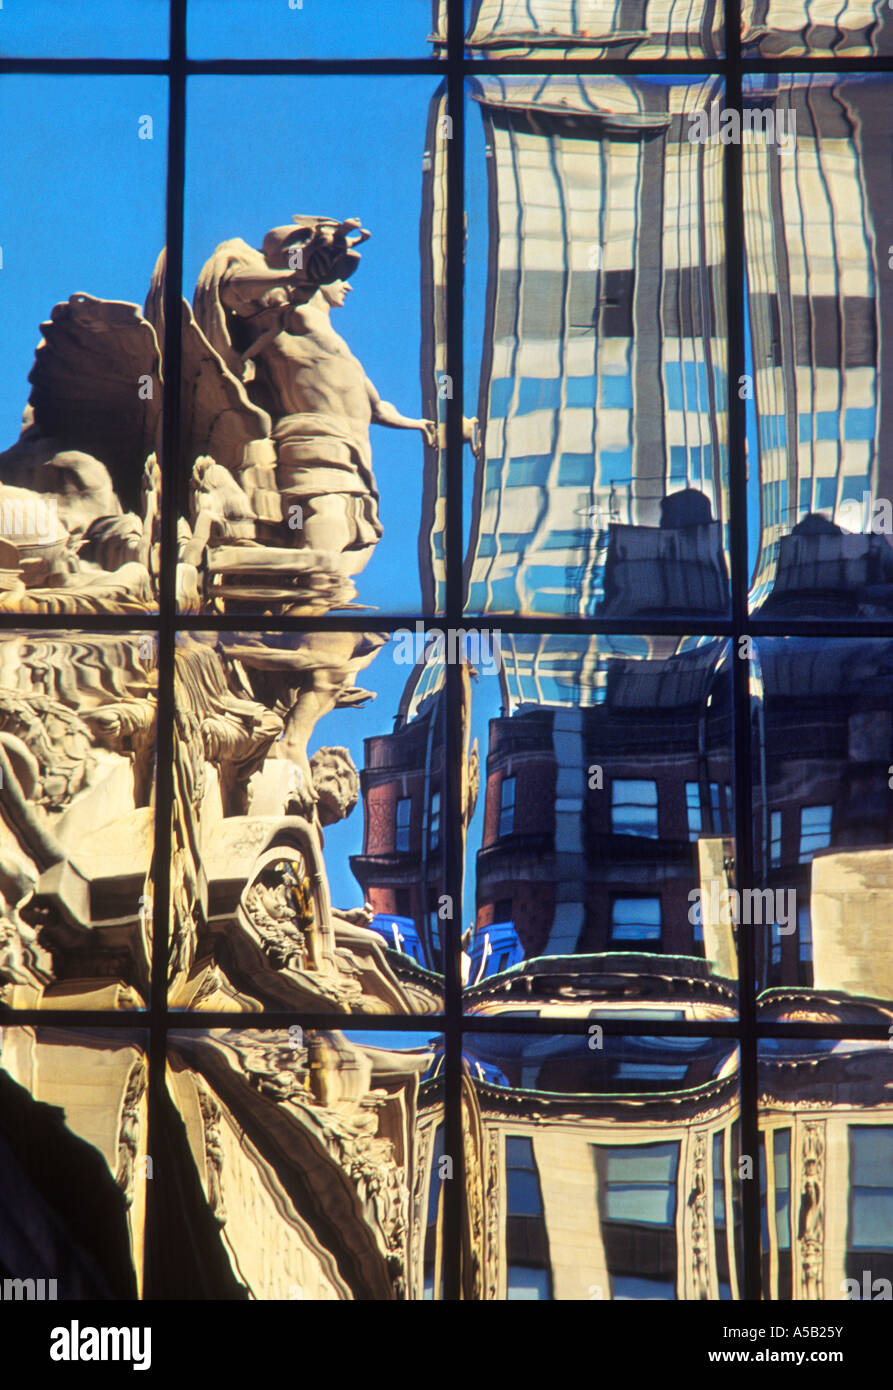 New York City Grand Central Station Exterior Beaux Arts Style Sculpture of Mercury and Clock Reflection USA - Stock Image